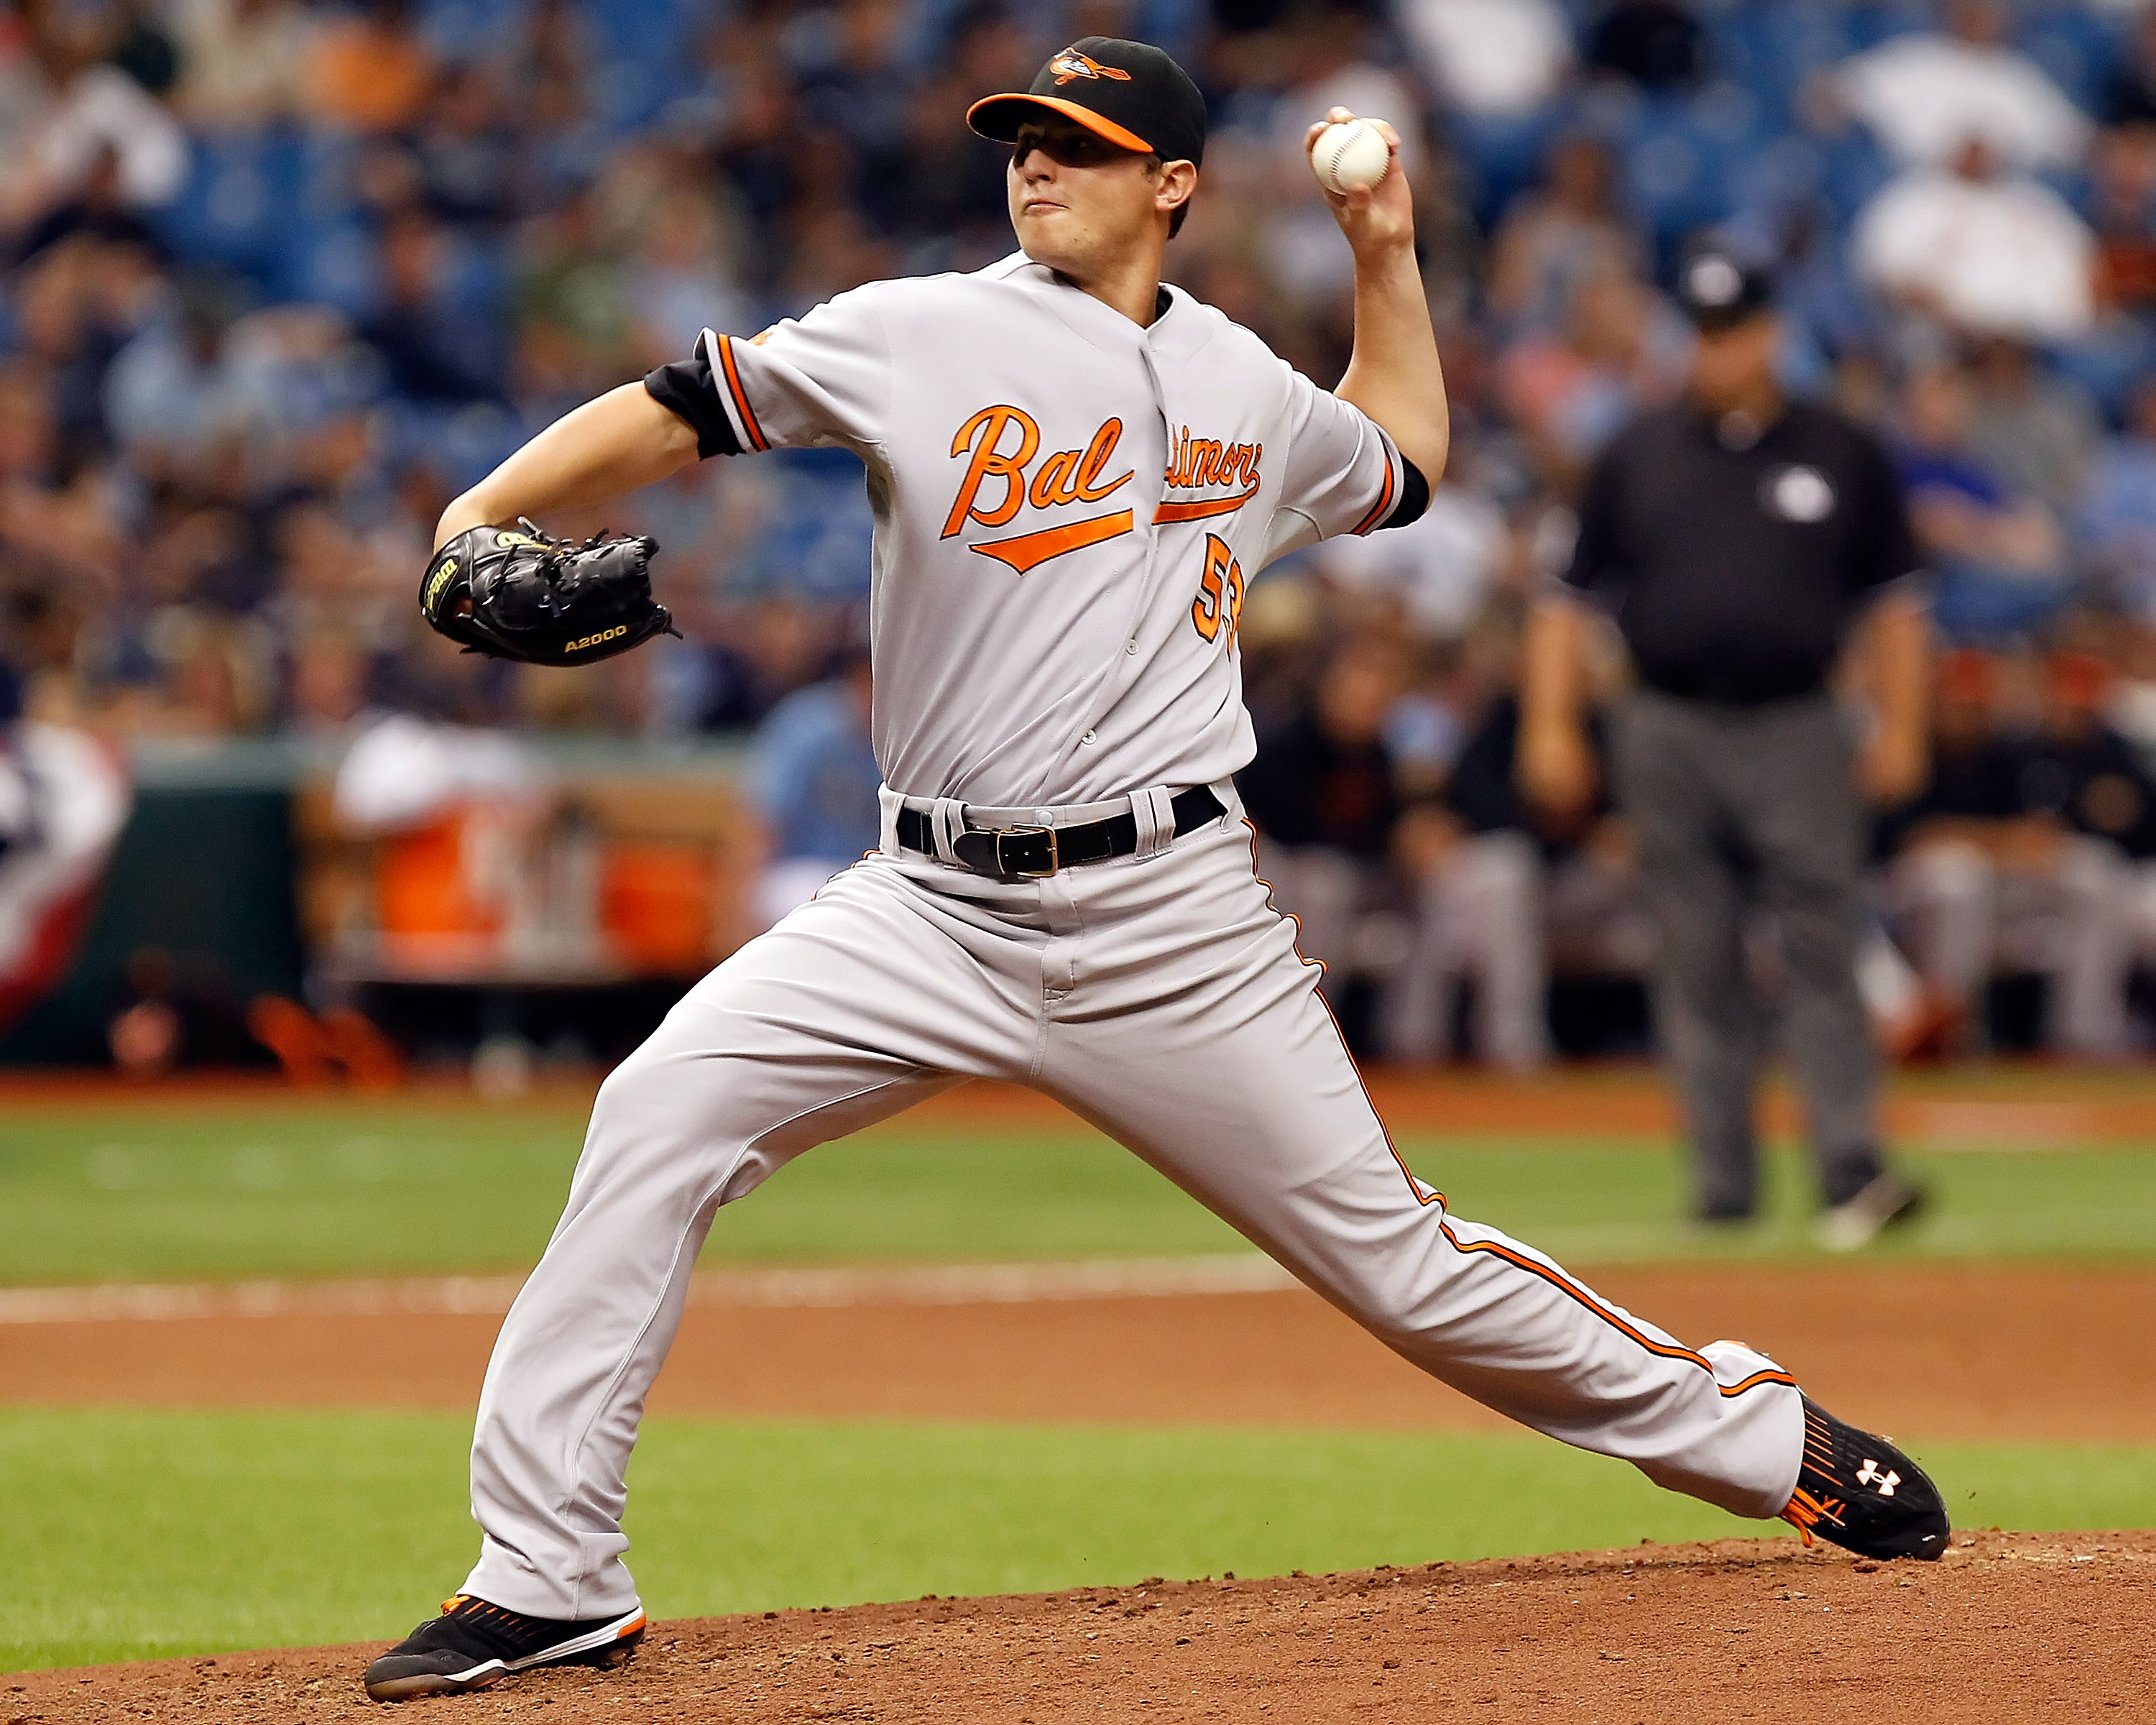 ST PETERSBURG, FL - APRIL 03:   Pitcher Zach Britton #53 of the Baltimore Orioles pitches against the Tampa Bay Rays during the game at Tropicana Field on April 3, 2011 in St. Petersburg, Florida.  (Photo by J. Meric/Getty Images)